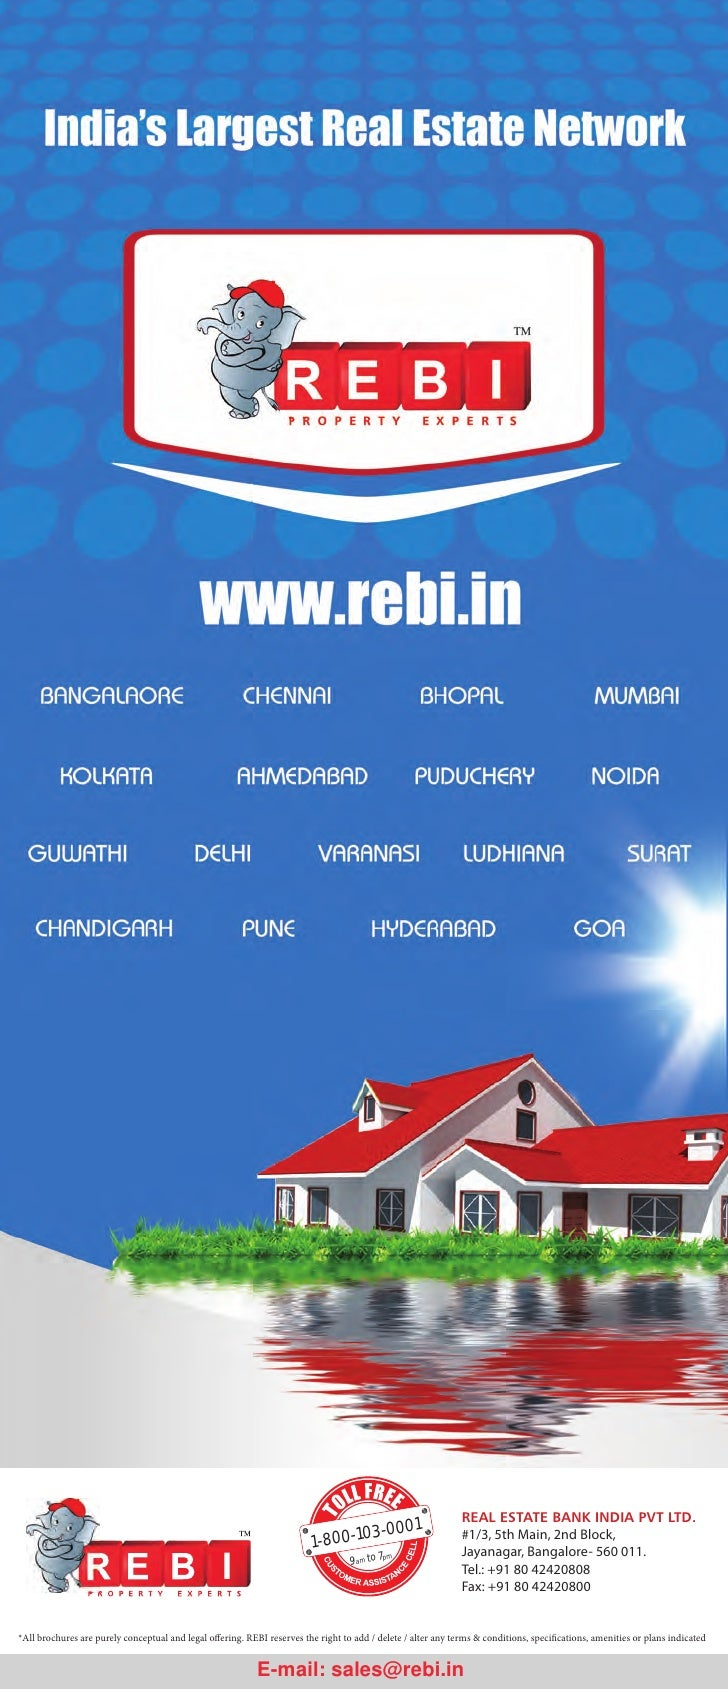 Projects Marketed by REBI